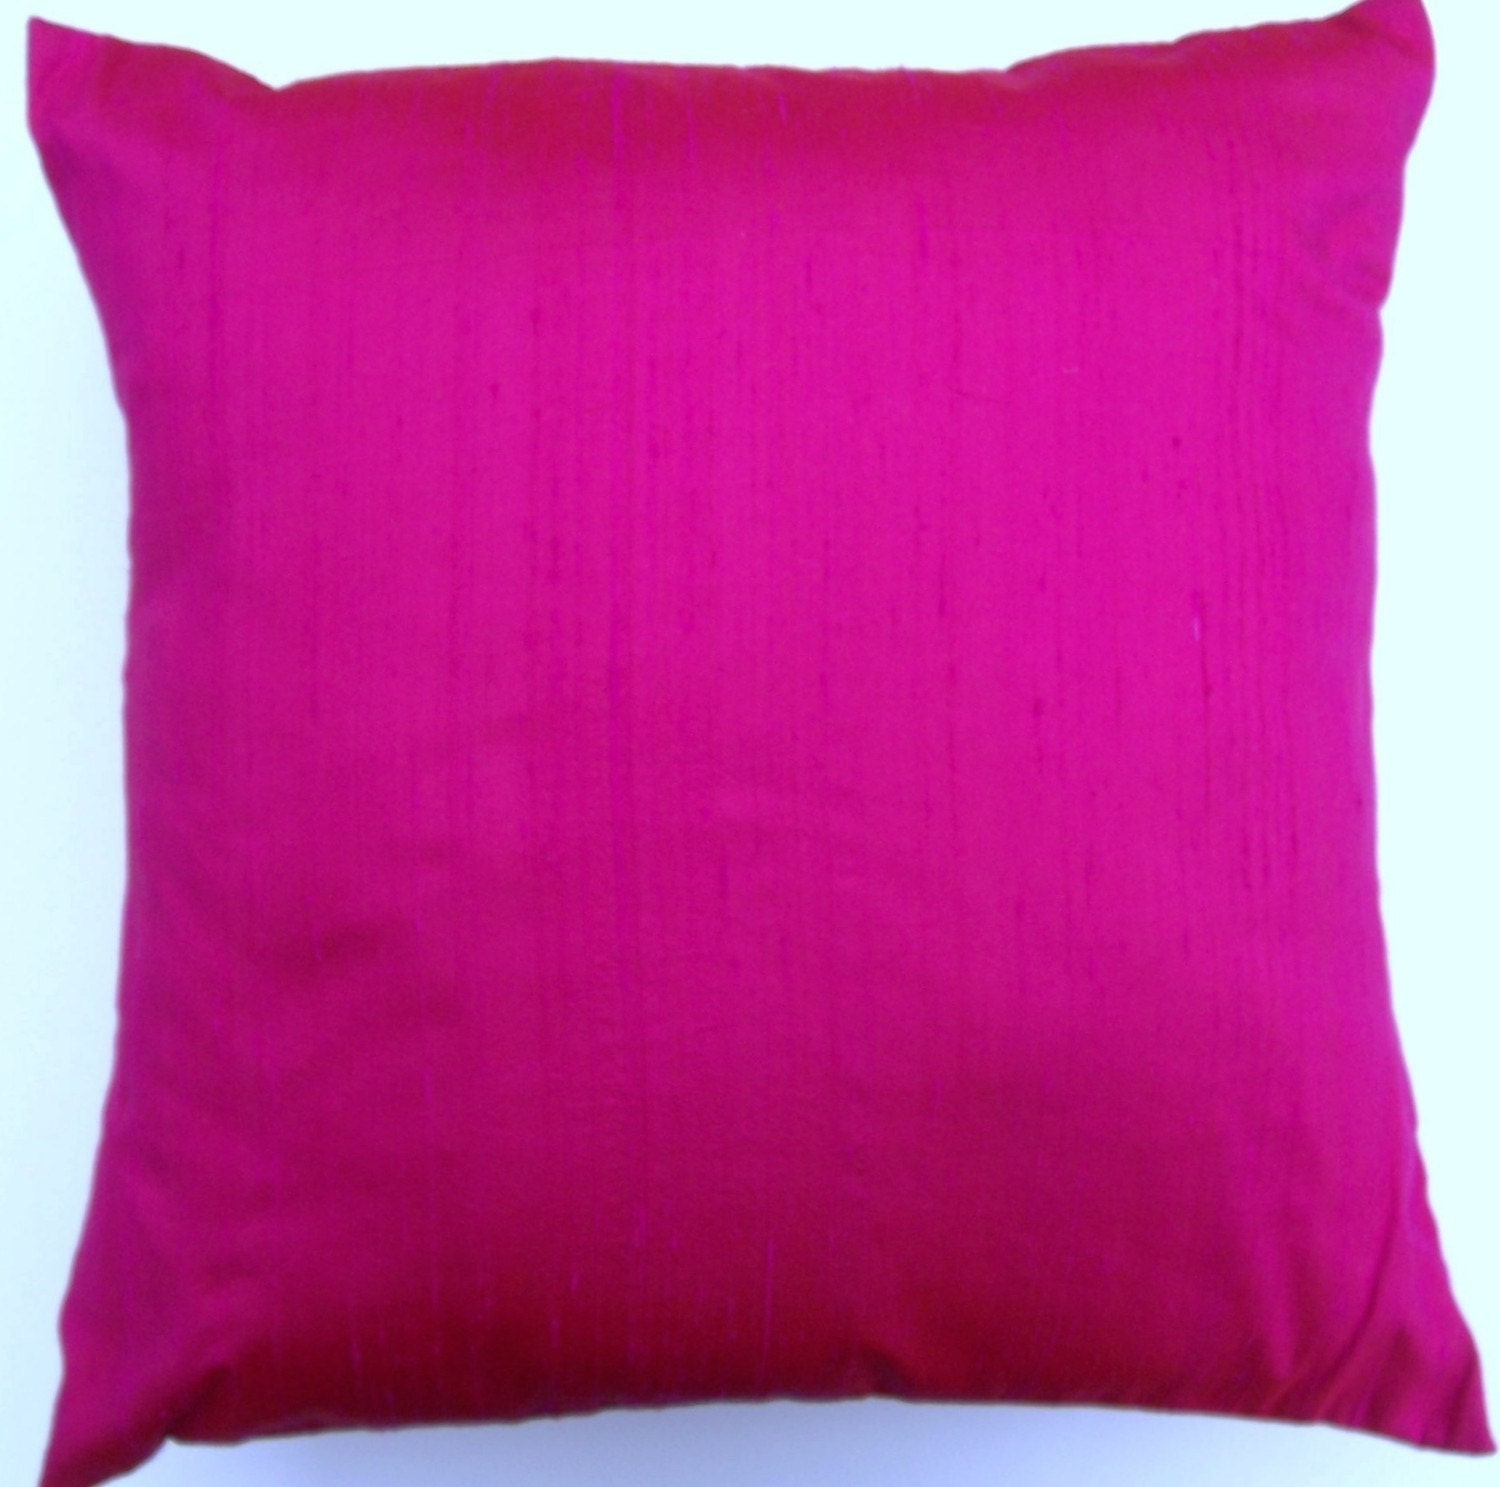 Fuschia Throw Pillows : Hot Pink Pillow Cover Hot Pink Throw Pillow Cushion Cover